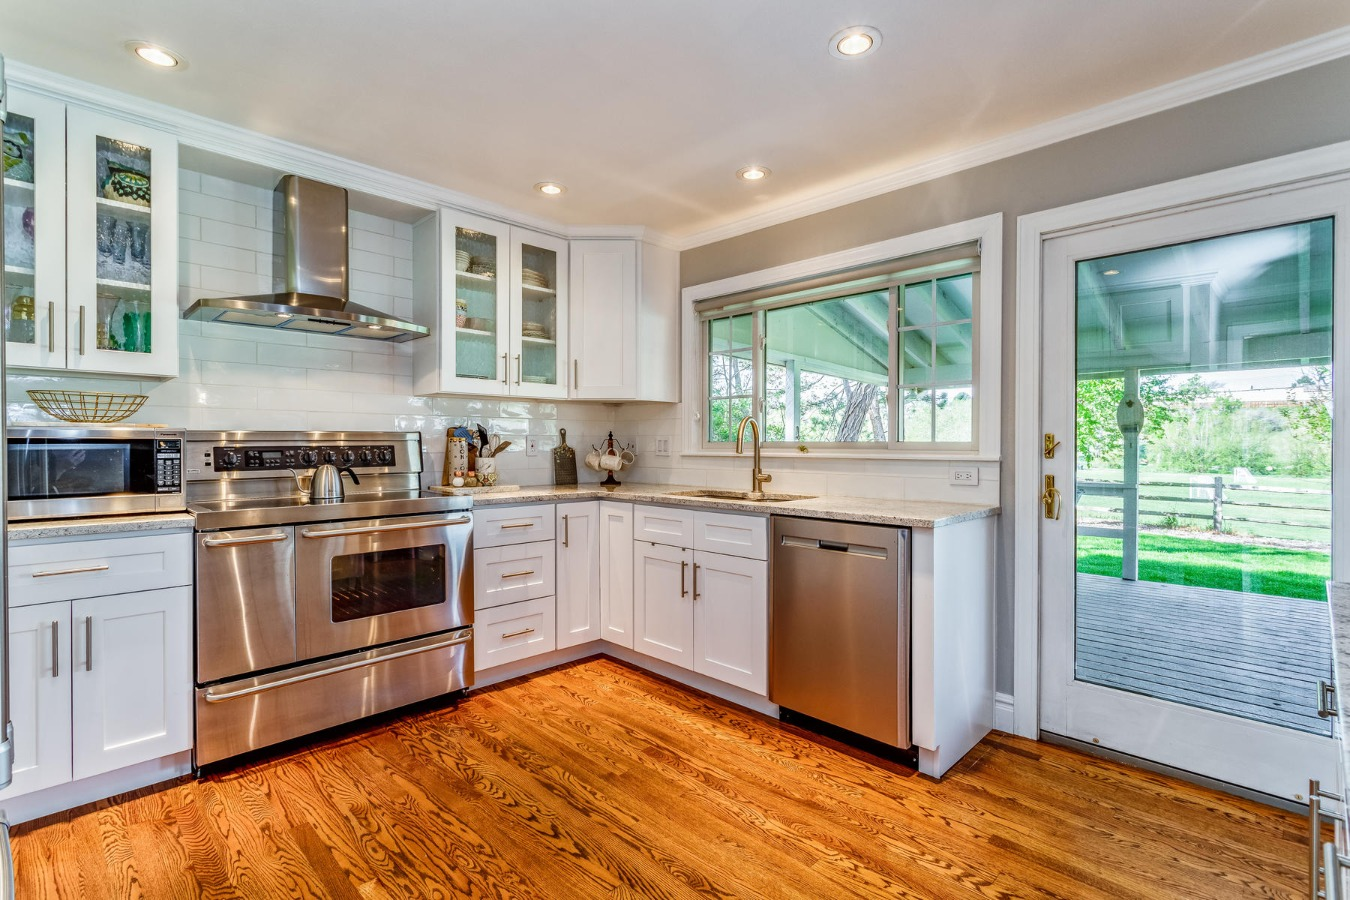 Stainless Appliances, Newer Cabinets & Granite